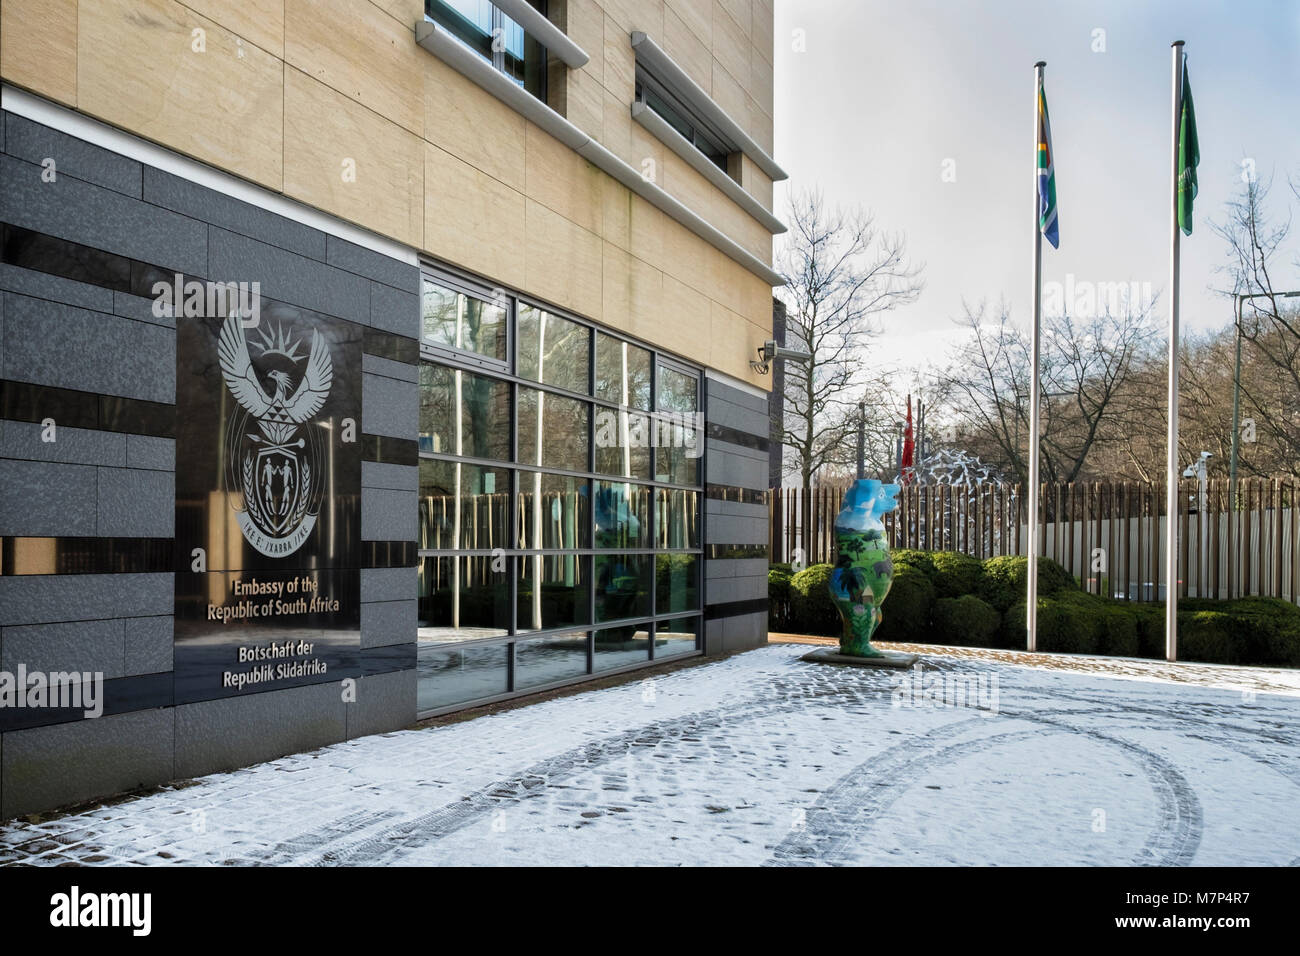 Berlin Mitte,Embassy of the Republic of South Africa. Building exterior, Coat of arms, flags,Buddy bear & snow - Stock Image